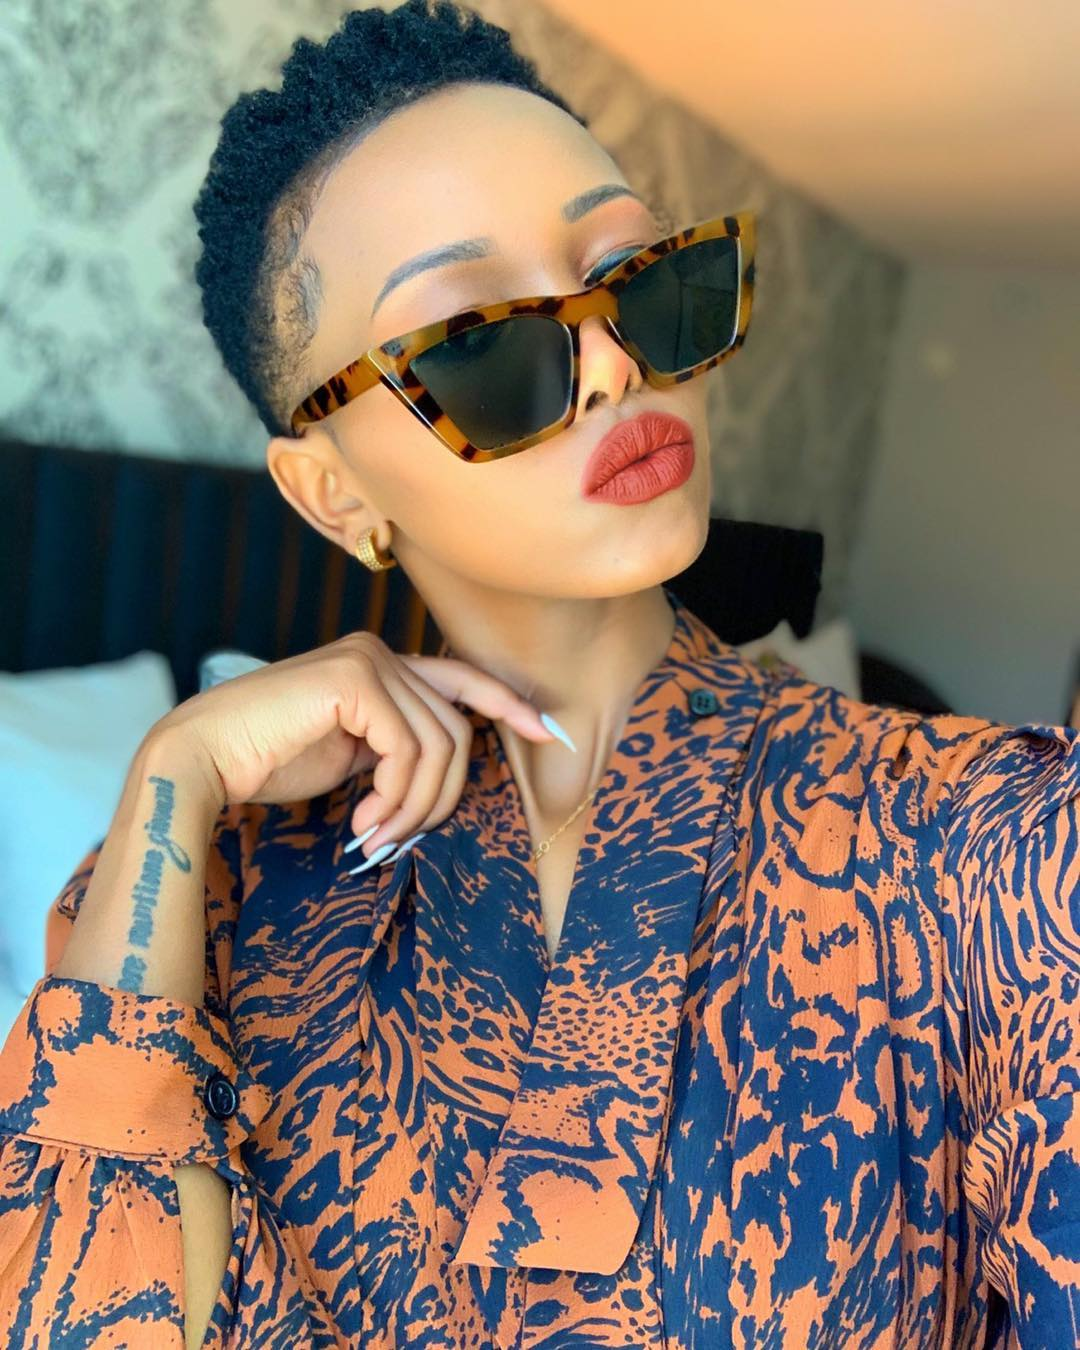 huddah monroe - Here is why Huddah Monroe is a great match for Kagwe Mungai (Opinion)